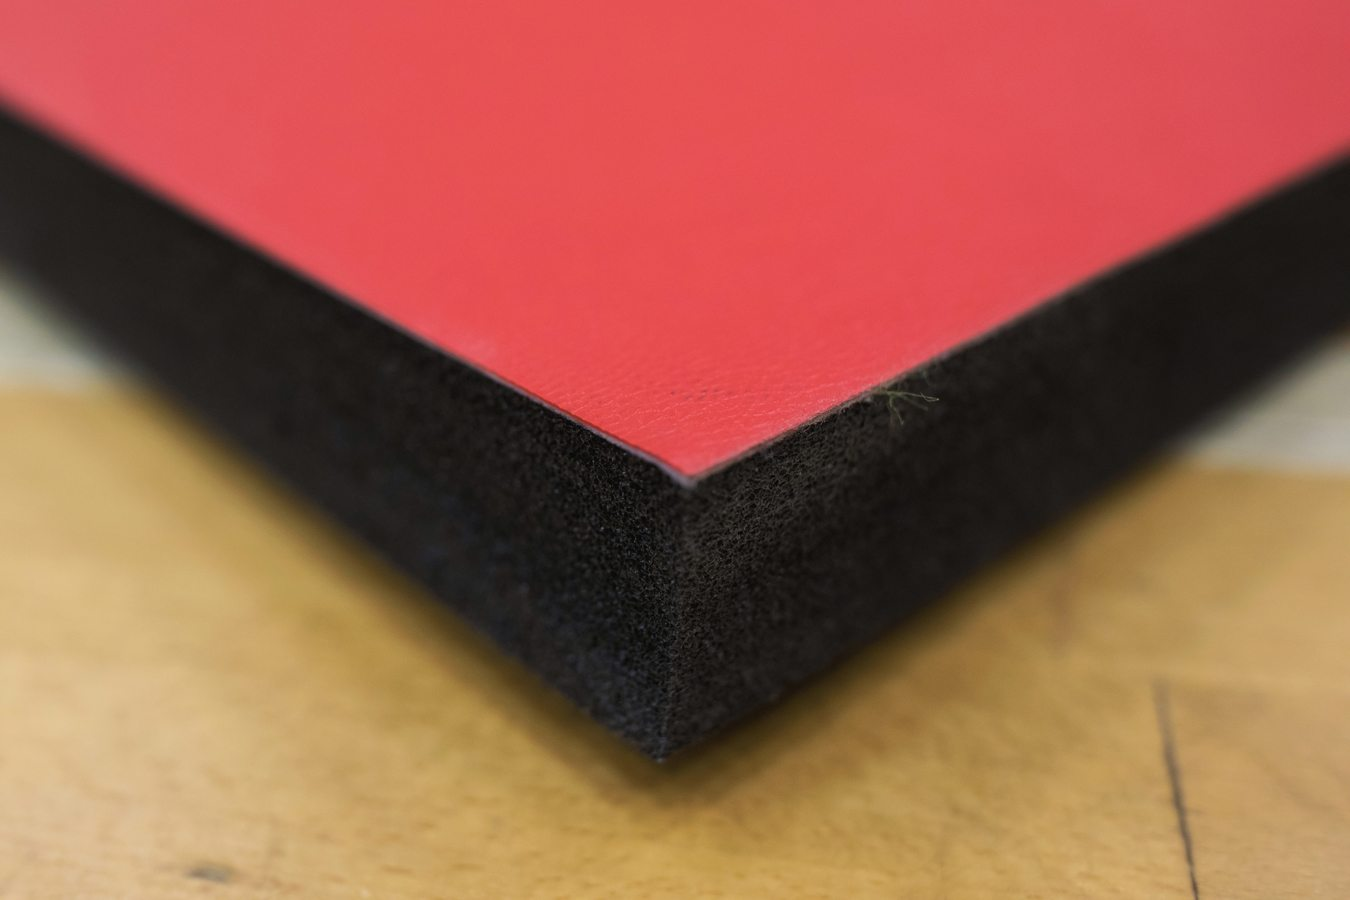 Corner of Red Promat PVC Smooth Roll Out Mats